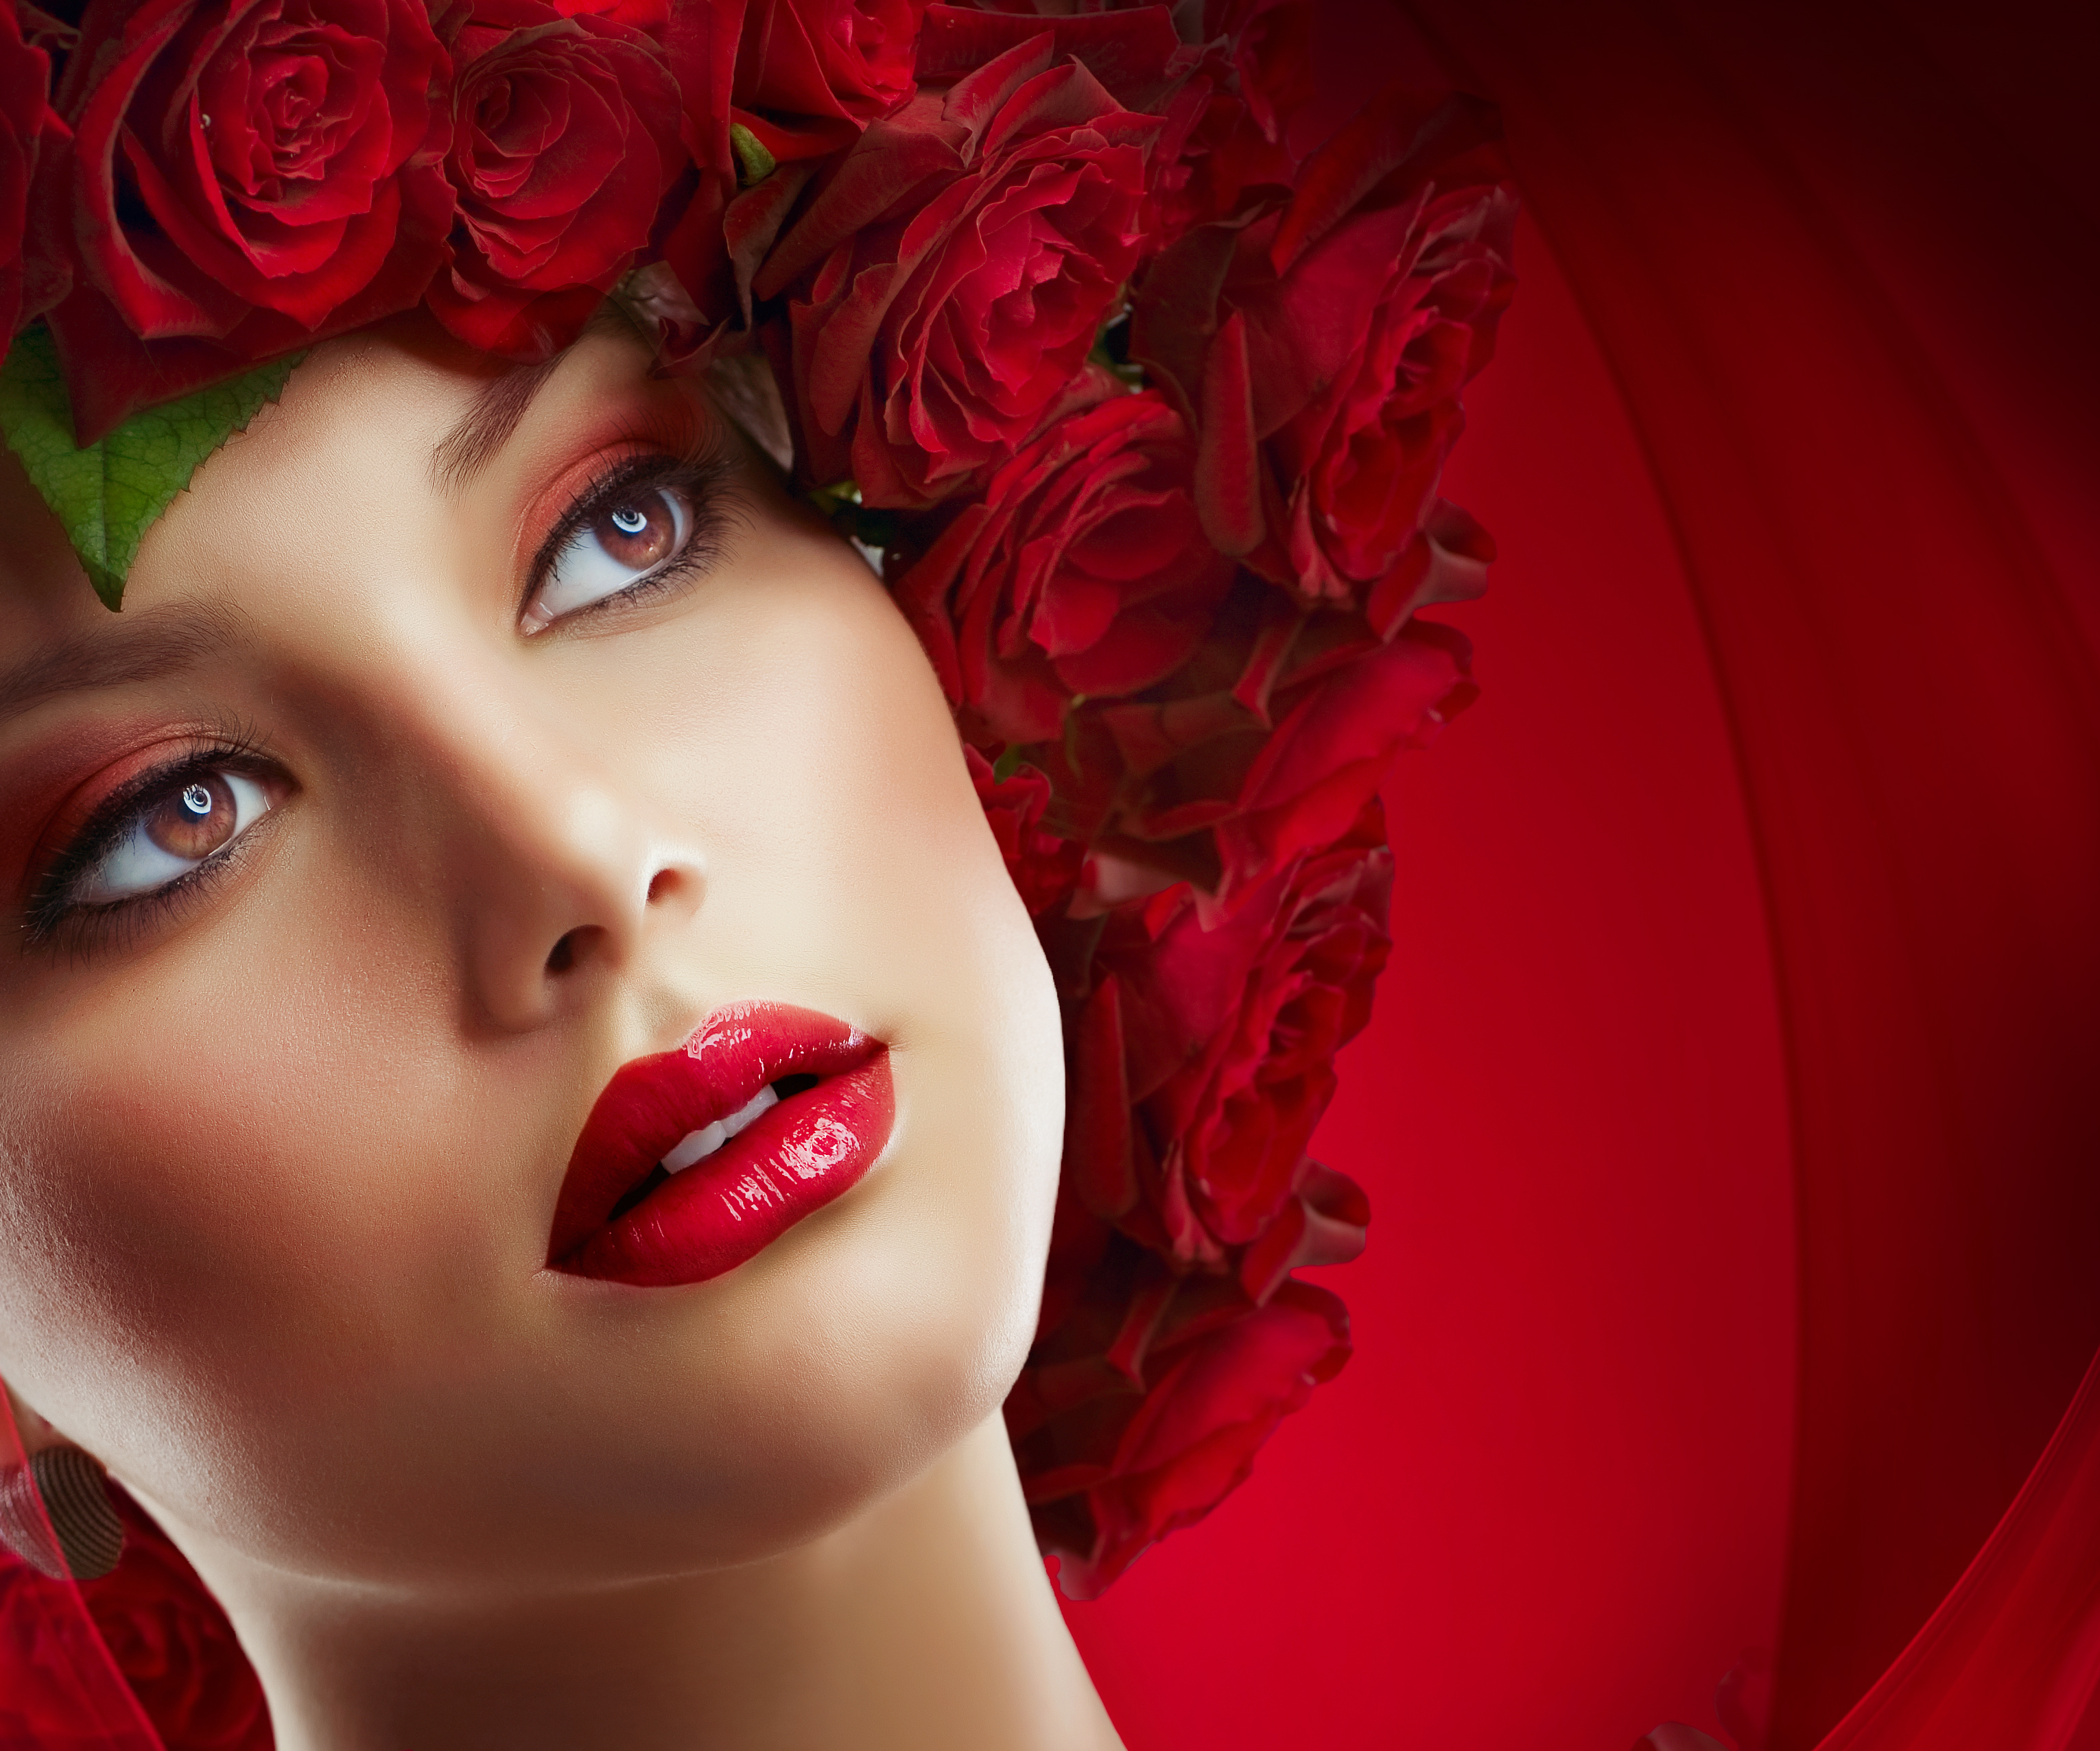 249 Makeup Hd Wallpapers Background Images Wallpaper Abyss